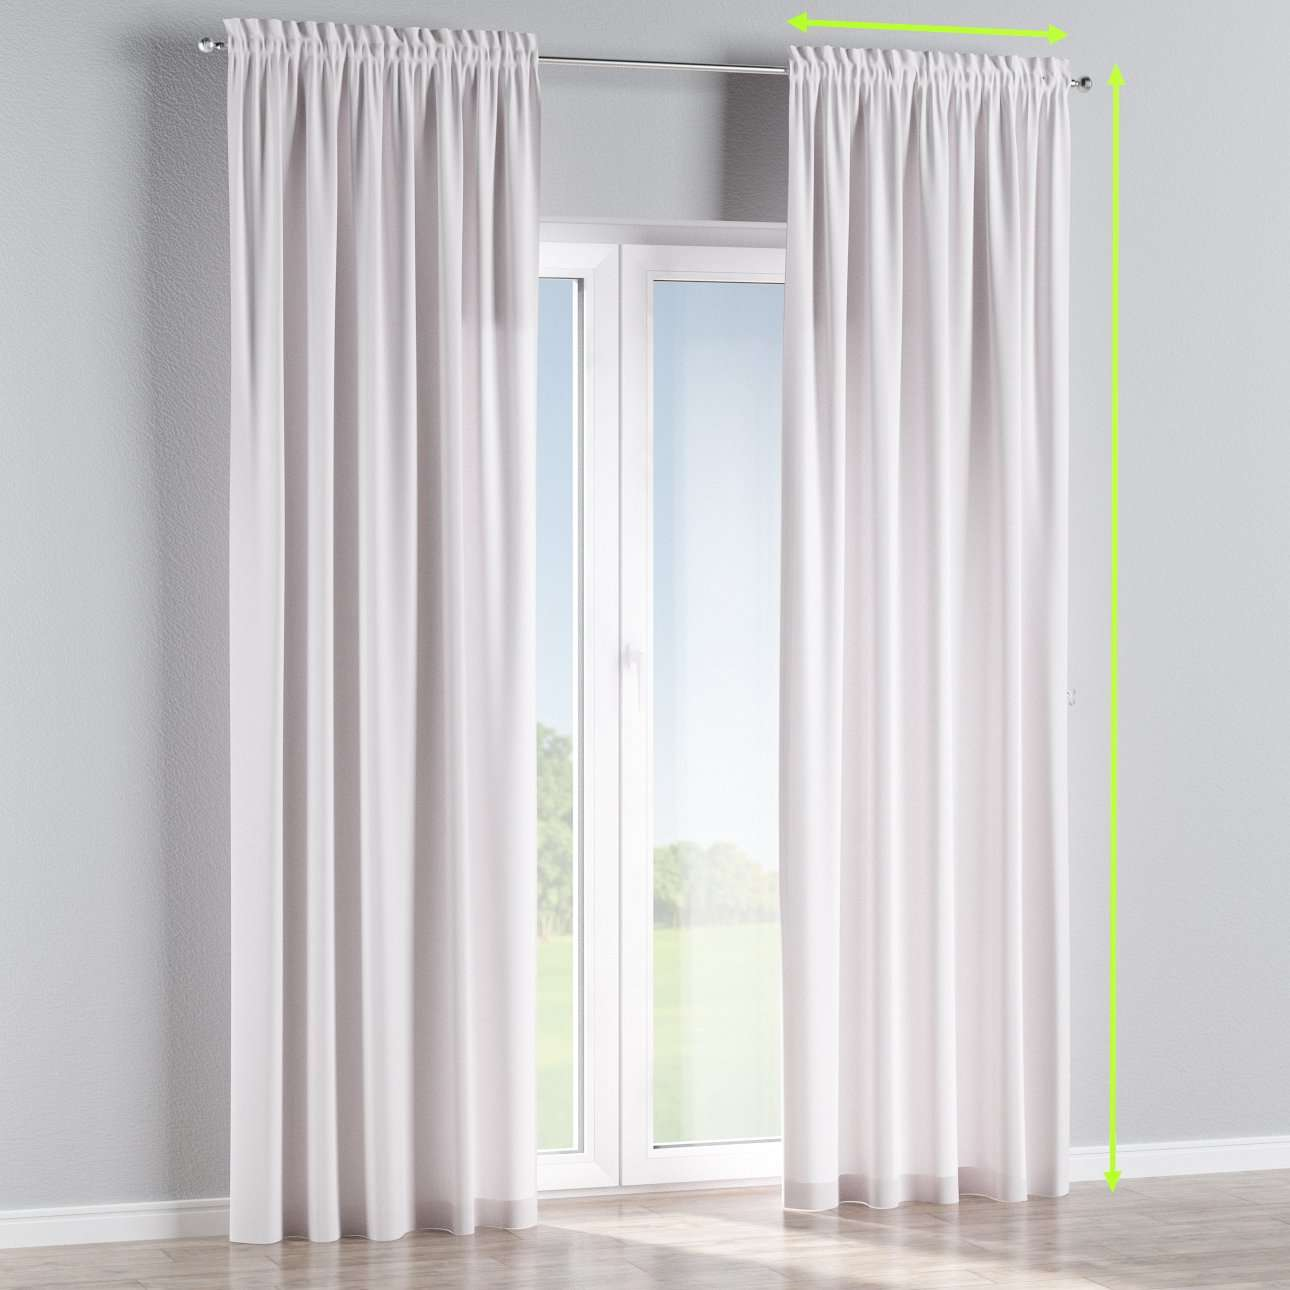 Slot and frill lined curtains in collection Cotton Panama, fabric: 702-34